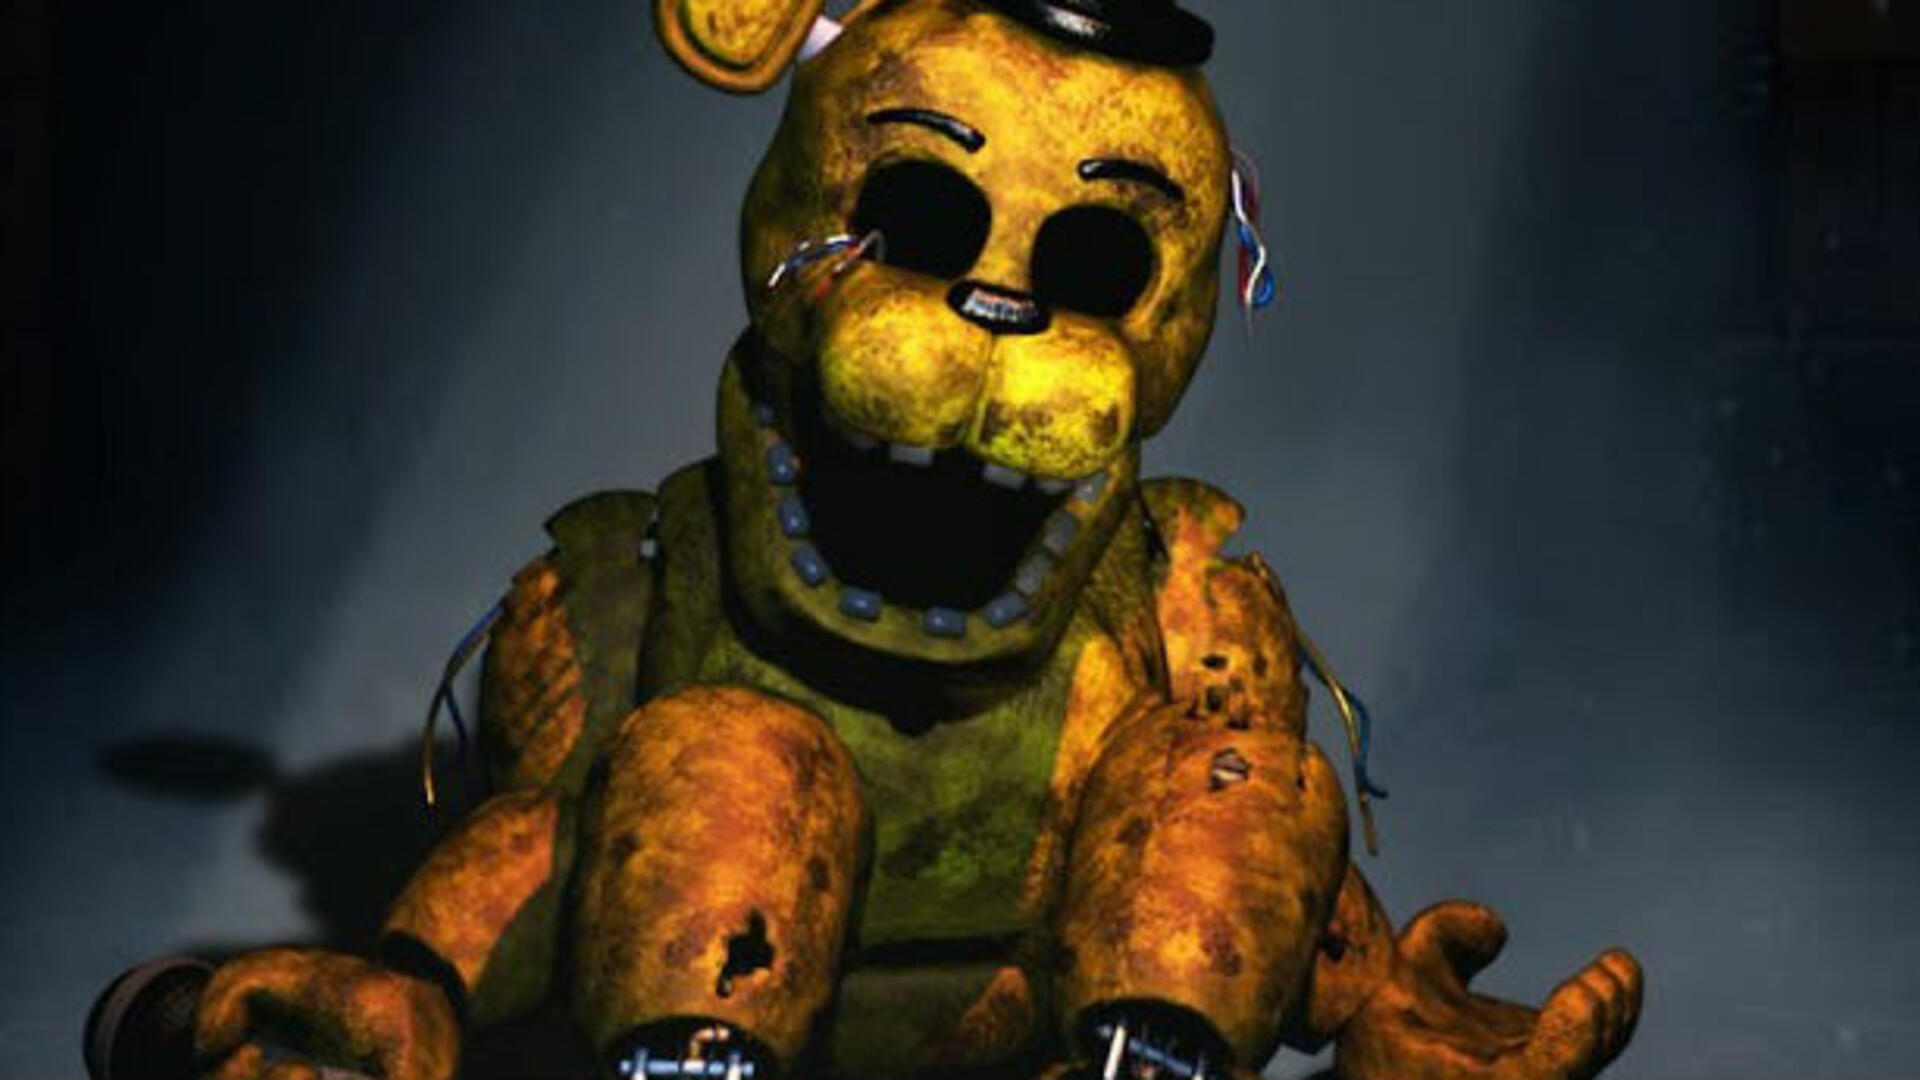 Five Nights at Freddy's Movie Being Handled by Blumhouse, Chris Columbus